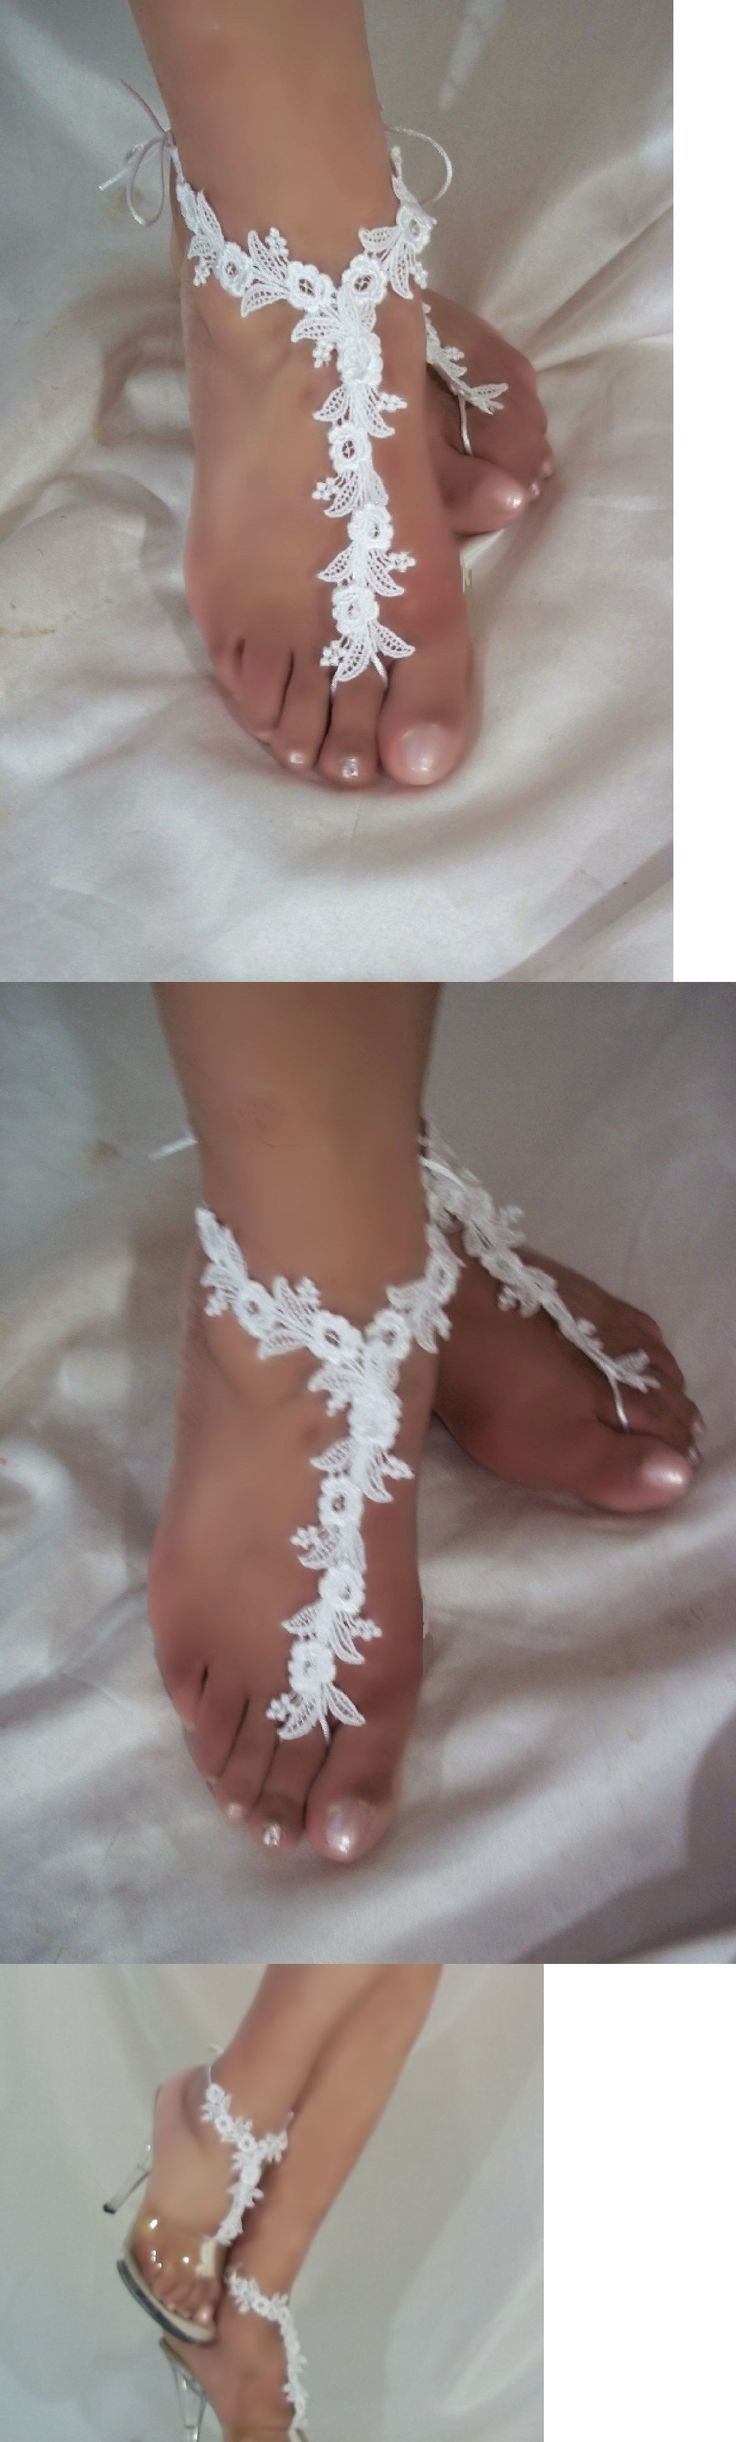 Other Wholesale Body Jewelry 51011: Wholesale Barefoot Sandals, 10 Pairs, Beach Sandals, Beach Bride Sandals, Anklet -> BUY IT NOW ONLY: $89 on eBay!